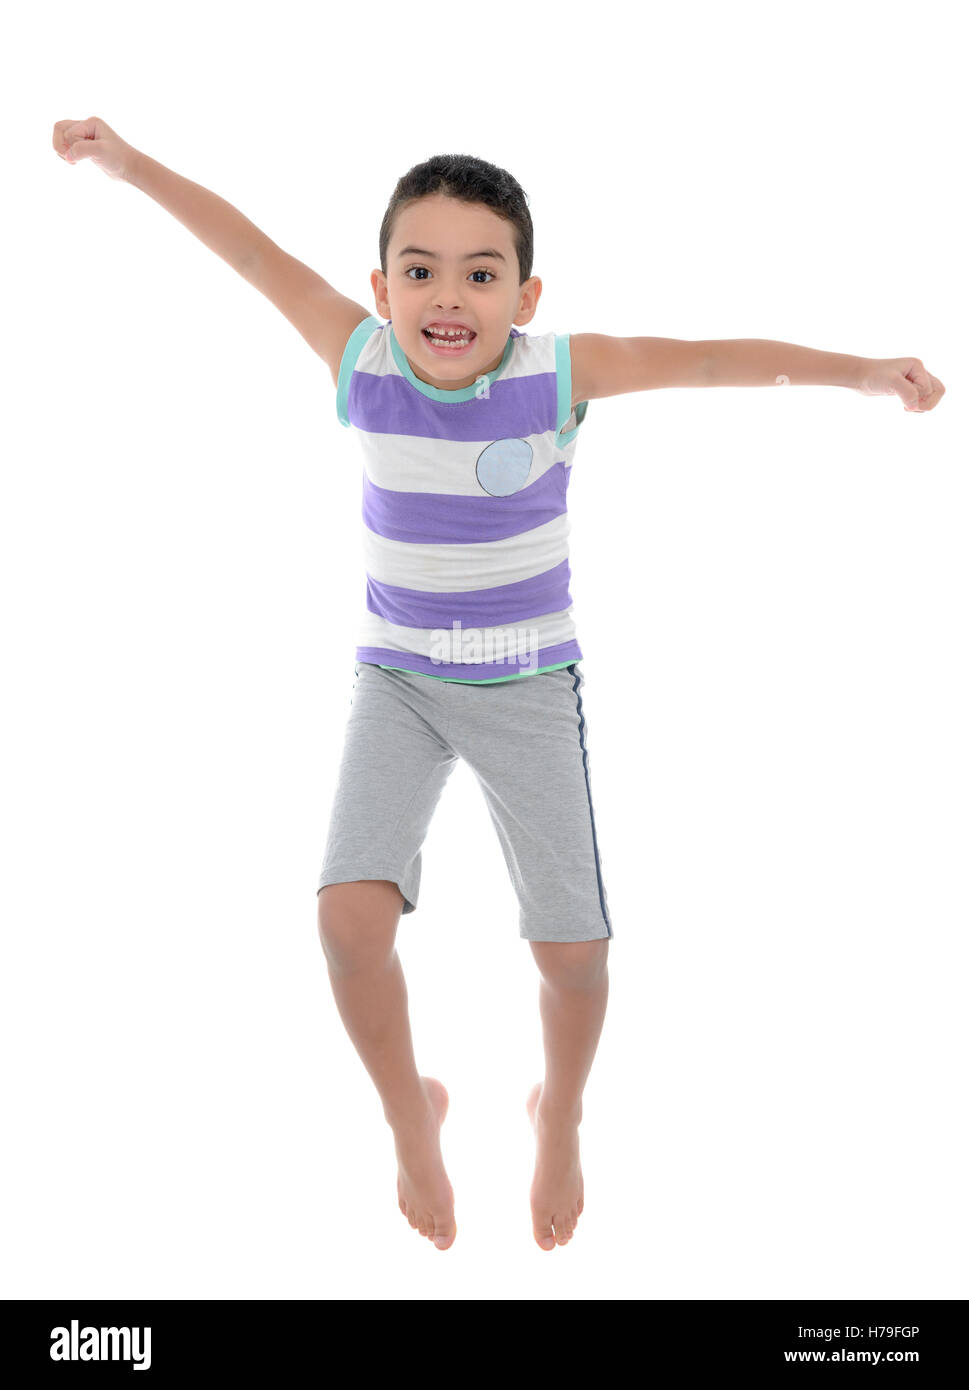 Active Joyful Boy Jumping With Joy Isolated on White Background - Stock Image